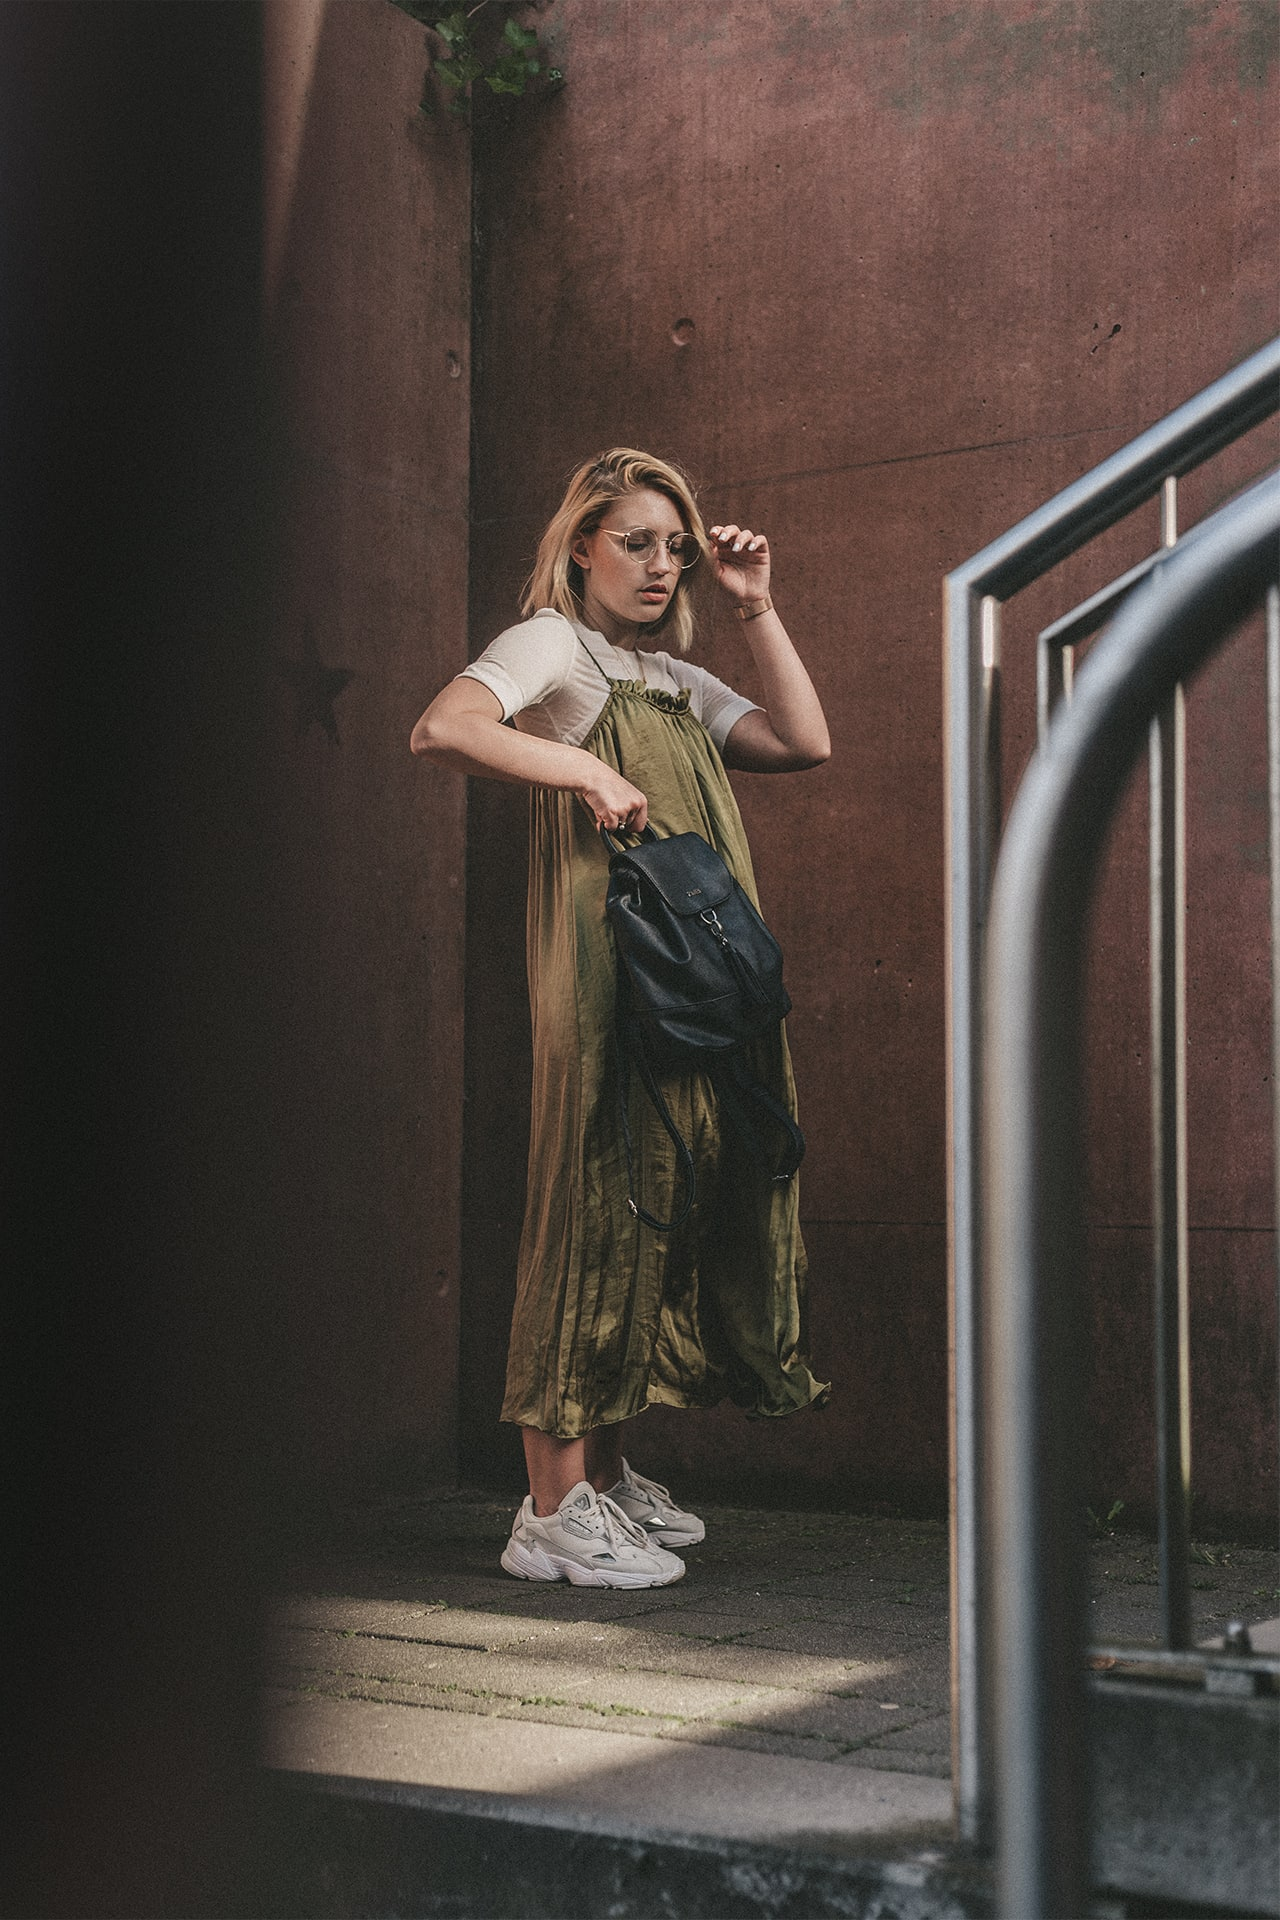 Langes Slipdress mit T-Shirt und Sneakers